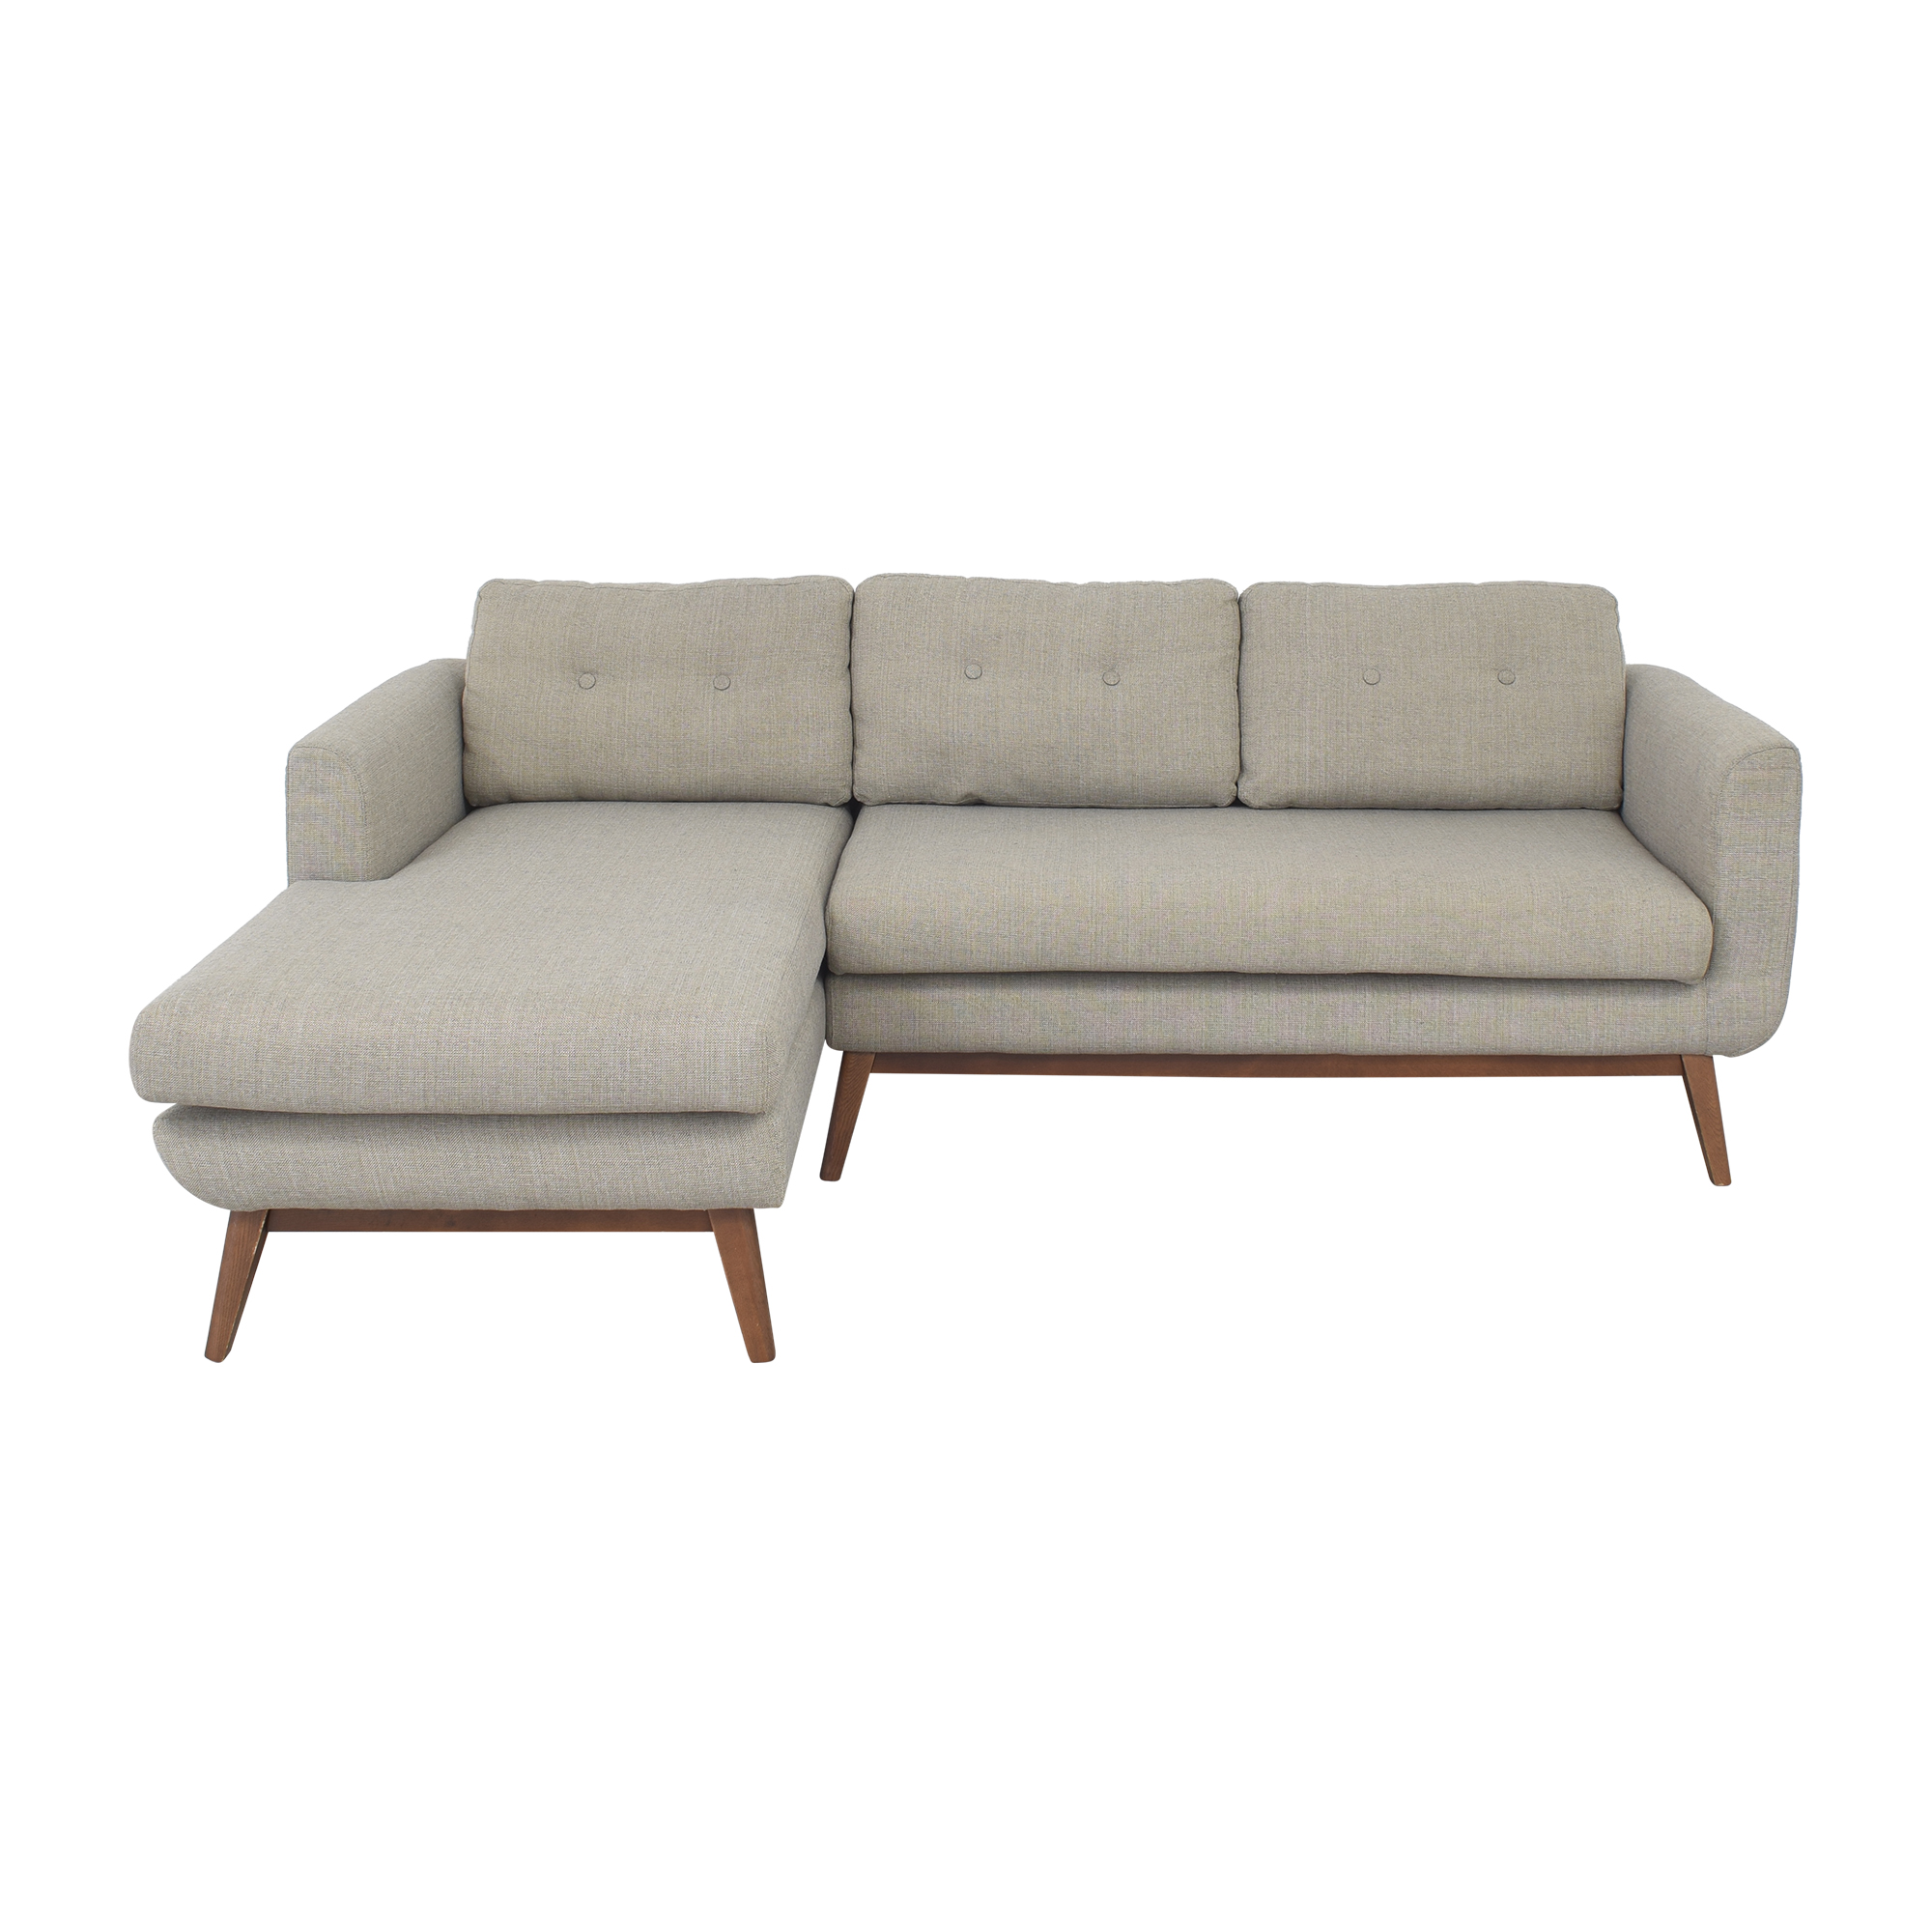 AllModern AllModern Keating Sofa and Chaise Sectional nyc